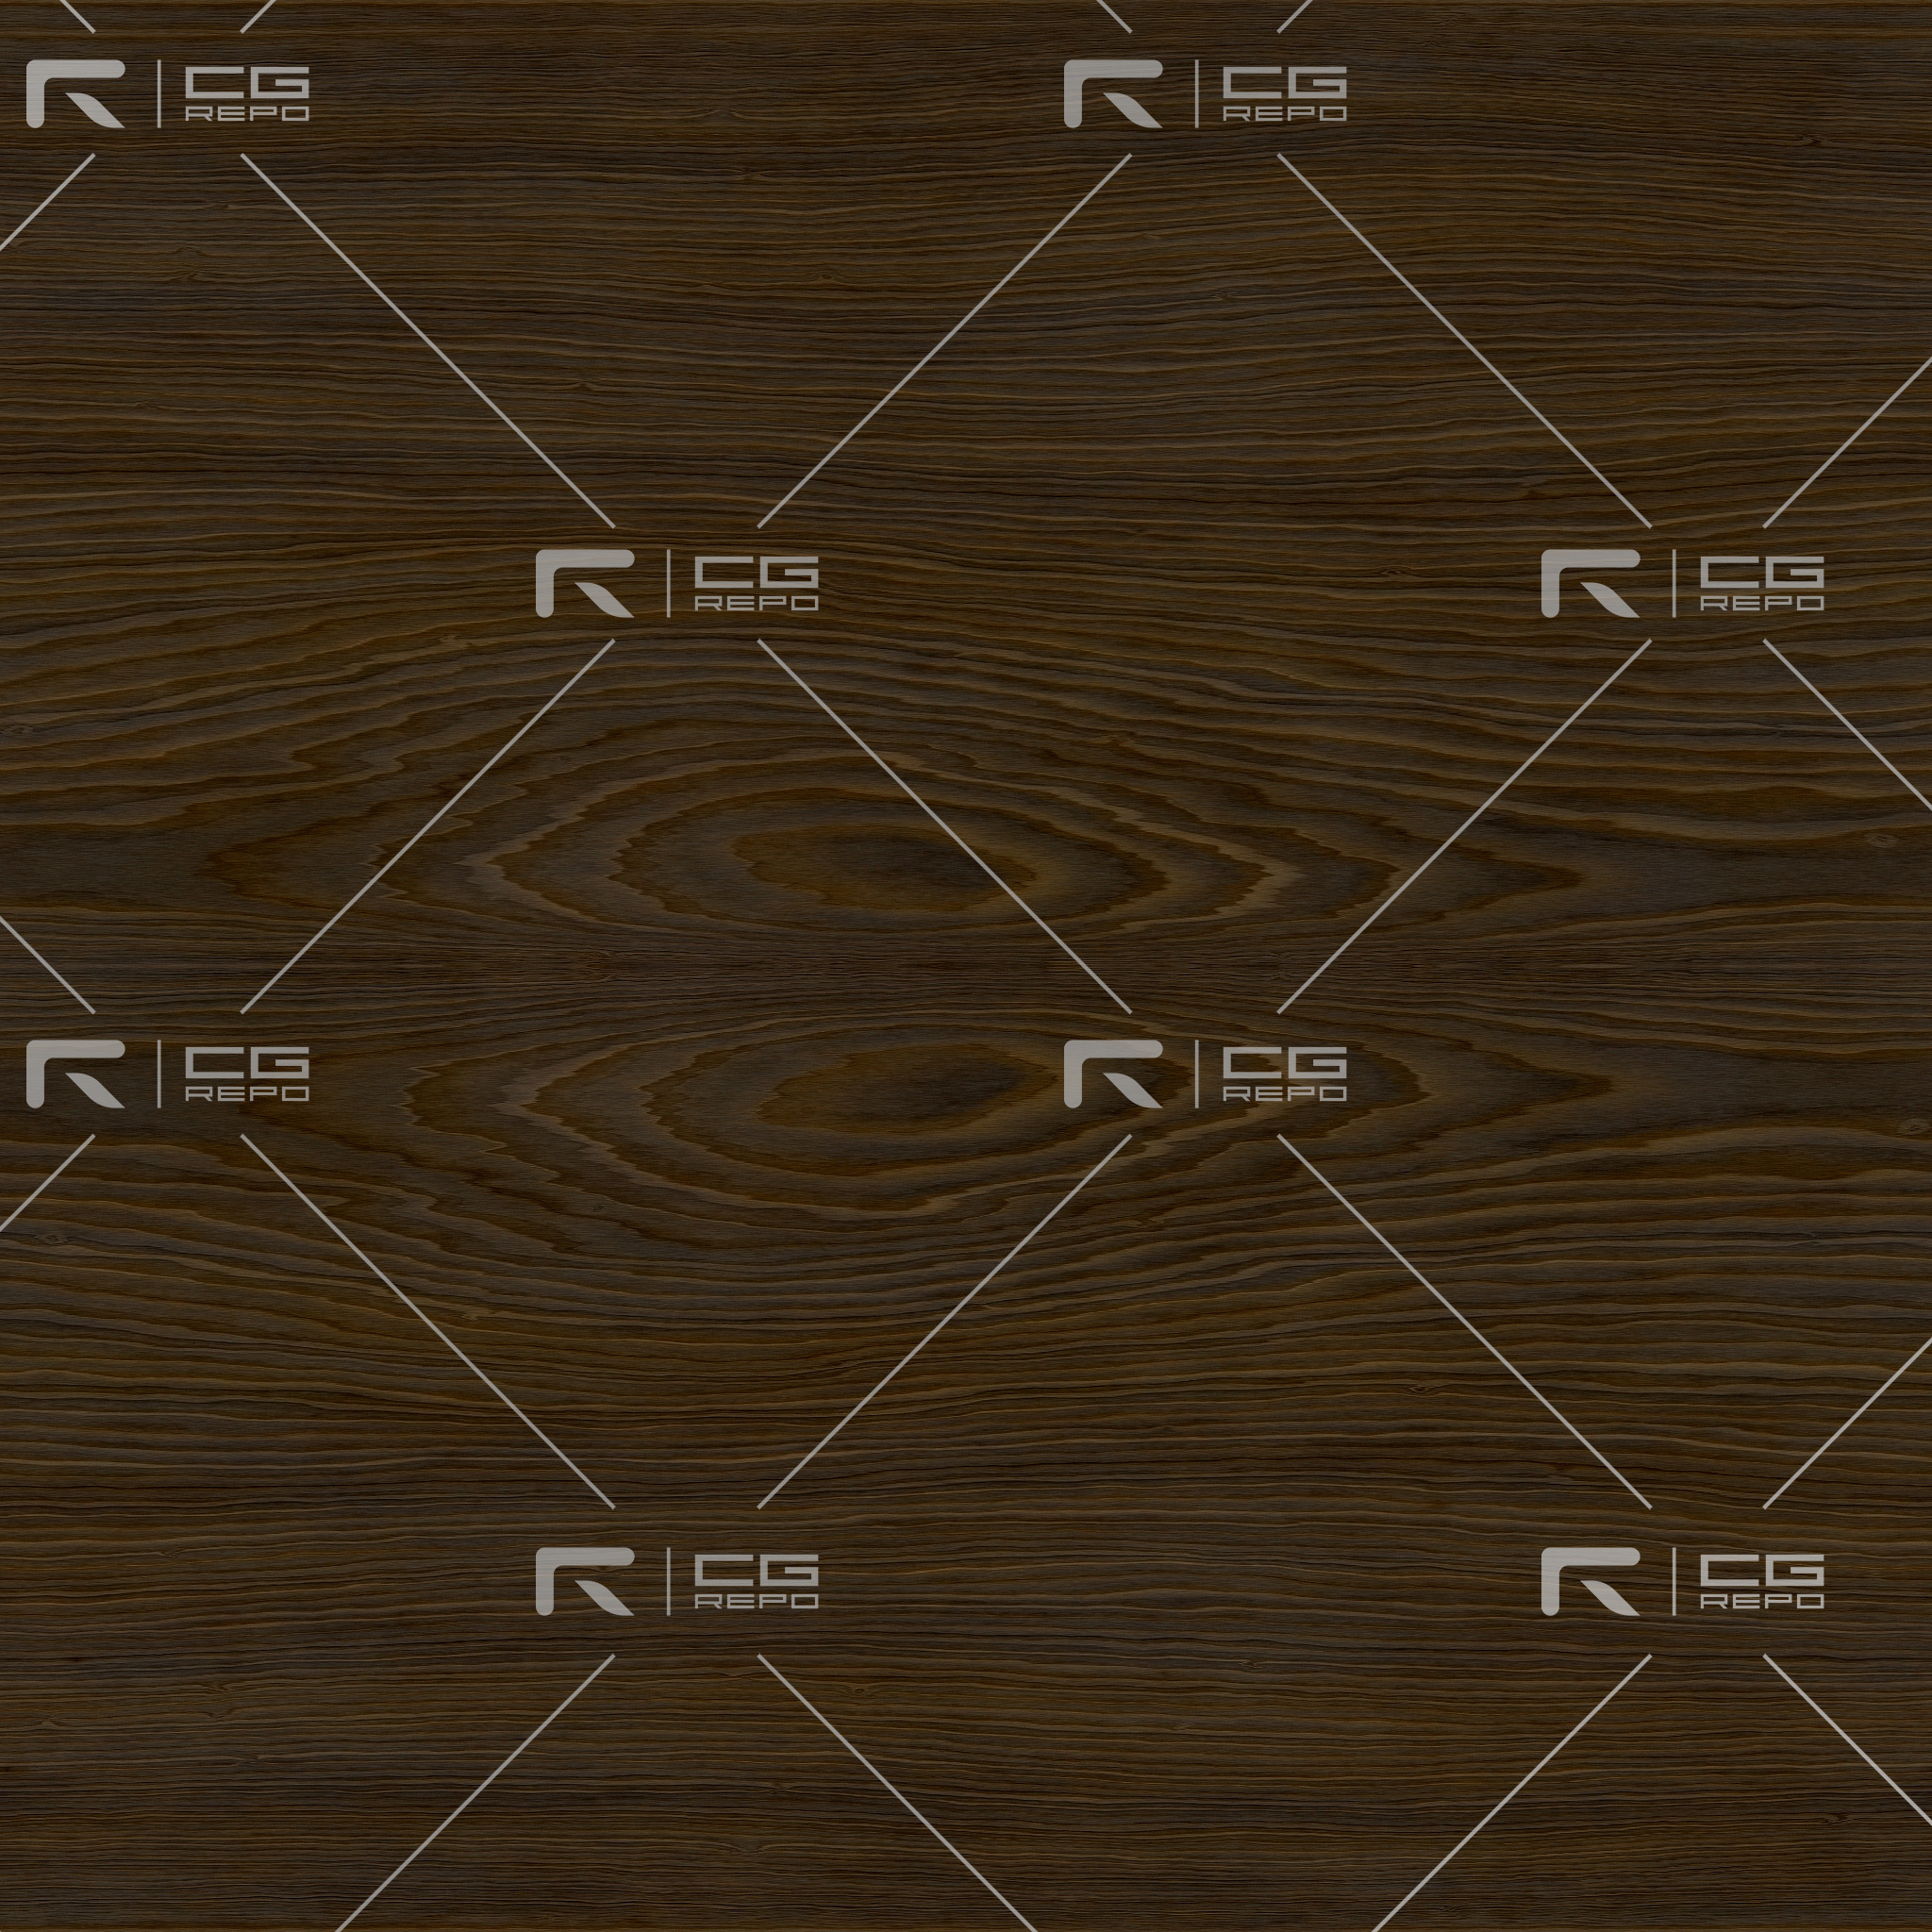 Walnut - Oxidated - Mirrored Figured Wood BaseColor Texture